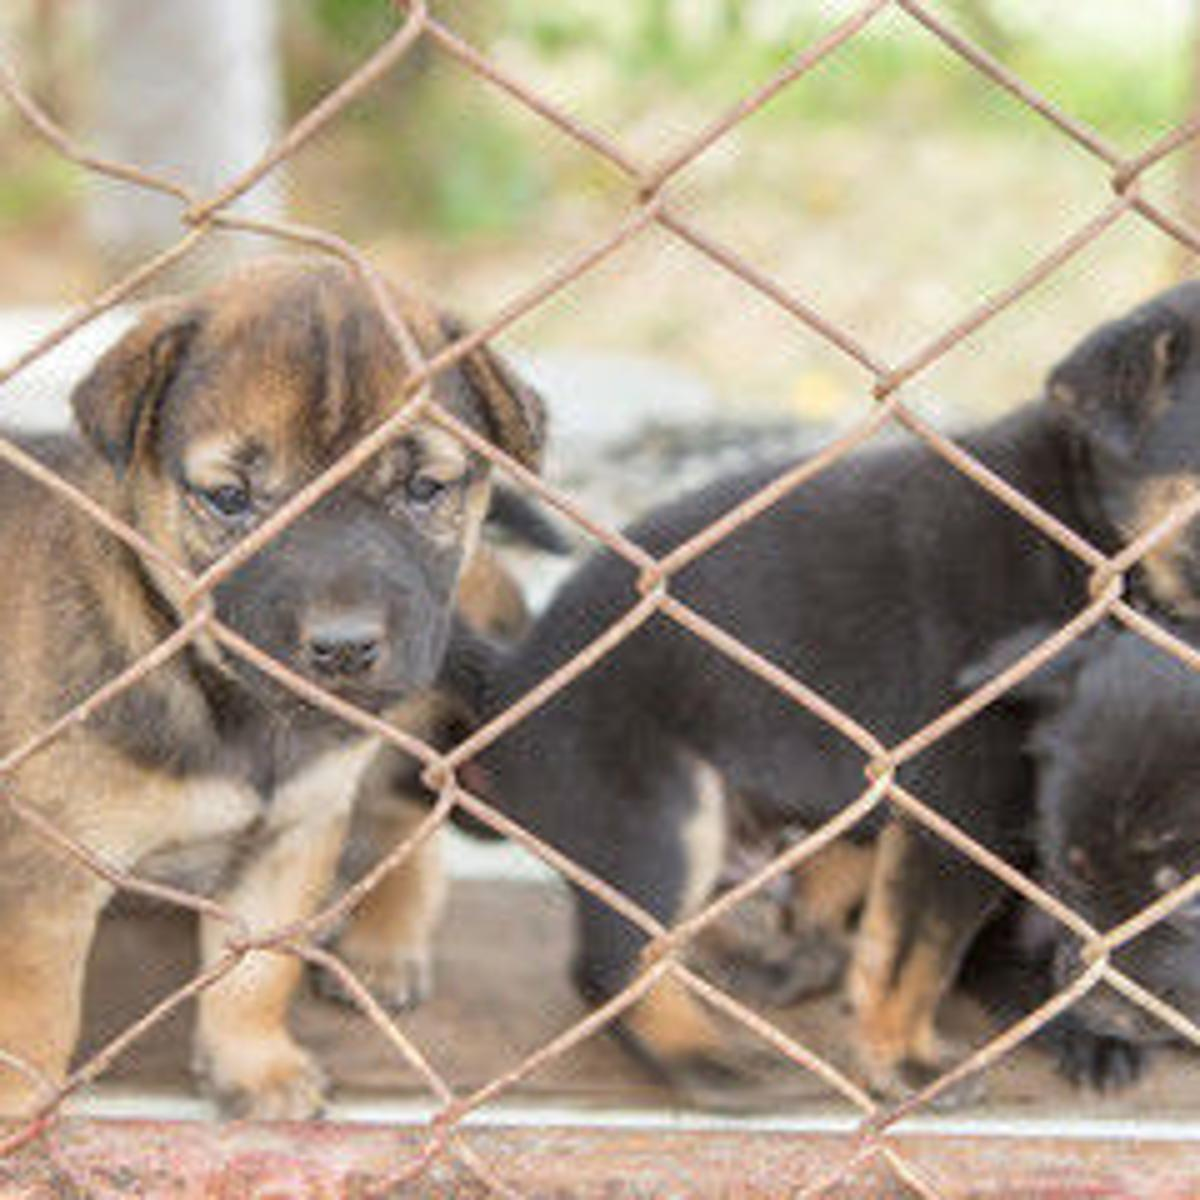 Montana must crack down on puppy mills | Editorial